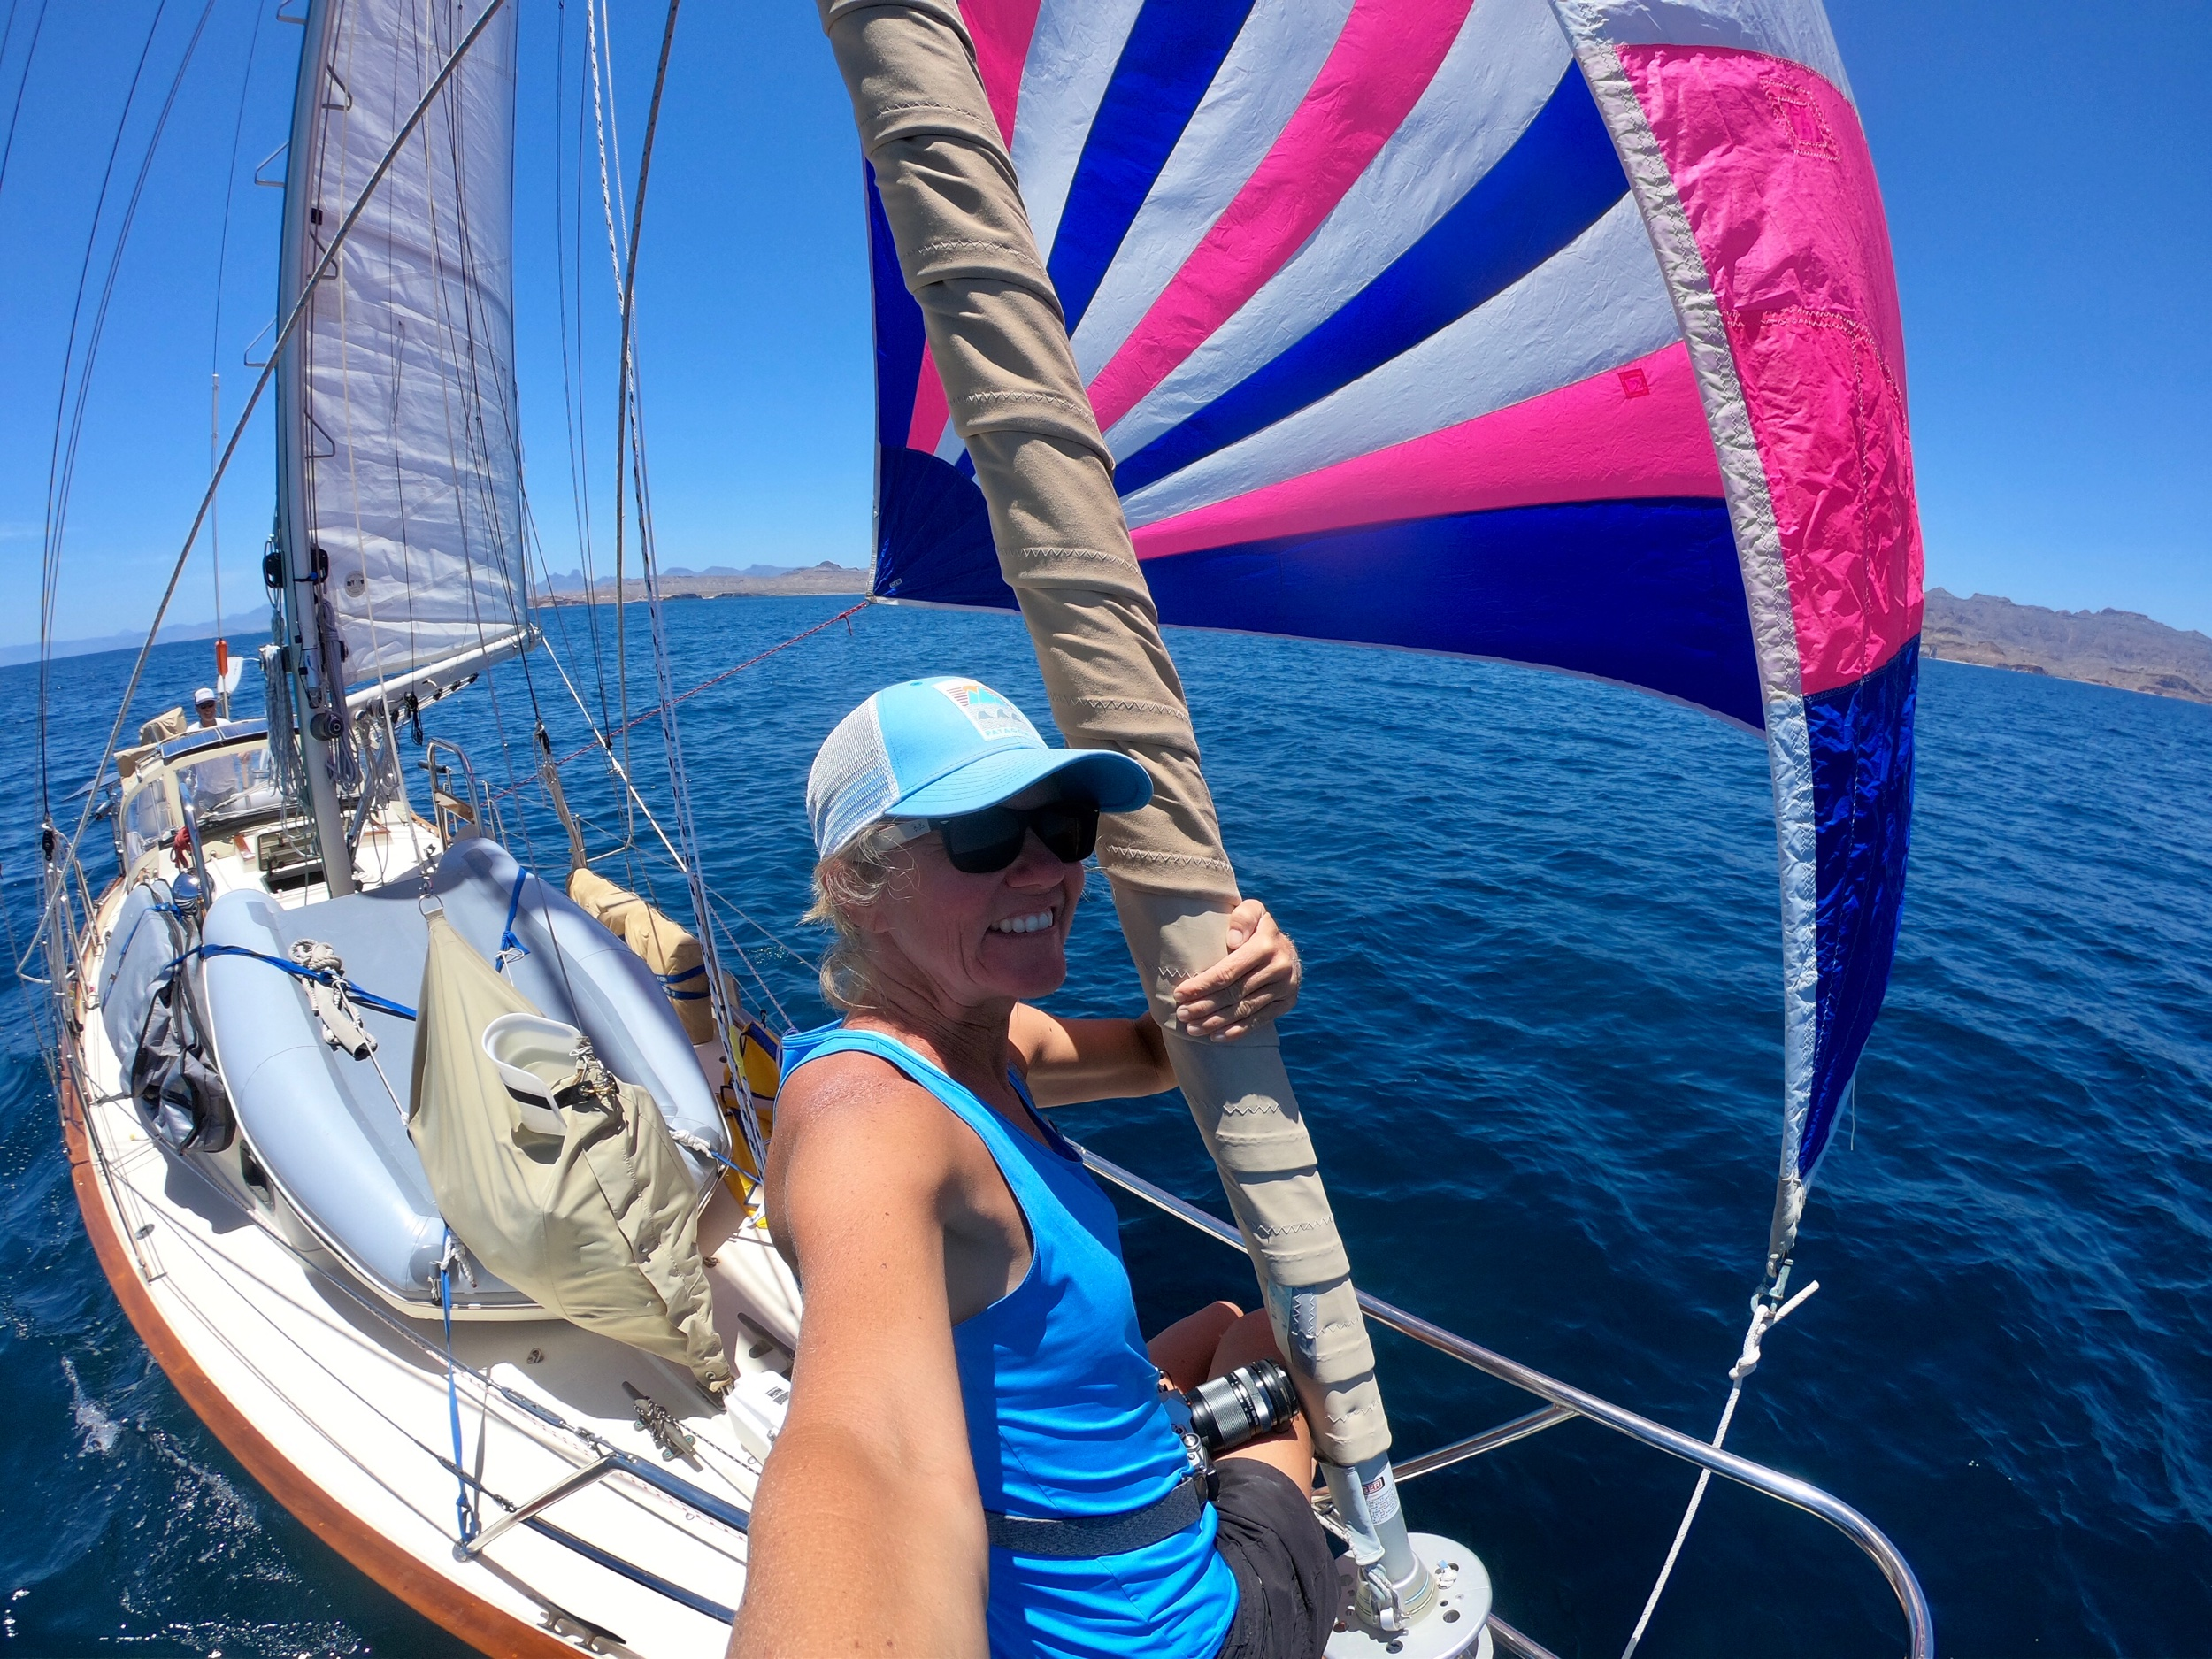 The trade off for light air? Spinnaker weather! (Technically, since we've flown heavy race kites in 30 knots, I should say the right conditions for the light 155% spin drifter we have aboard.)